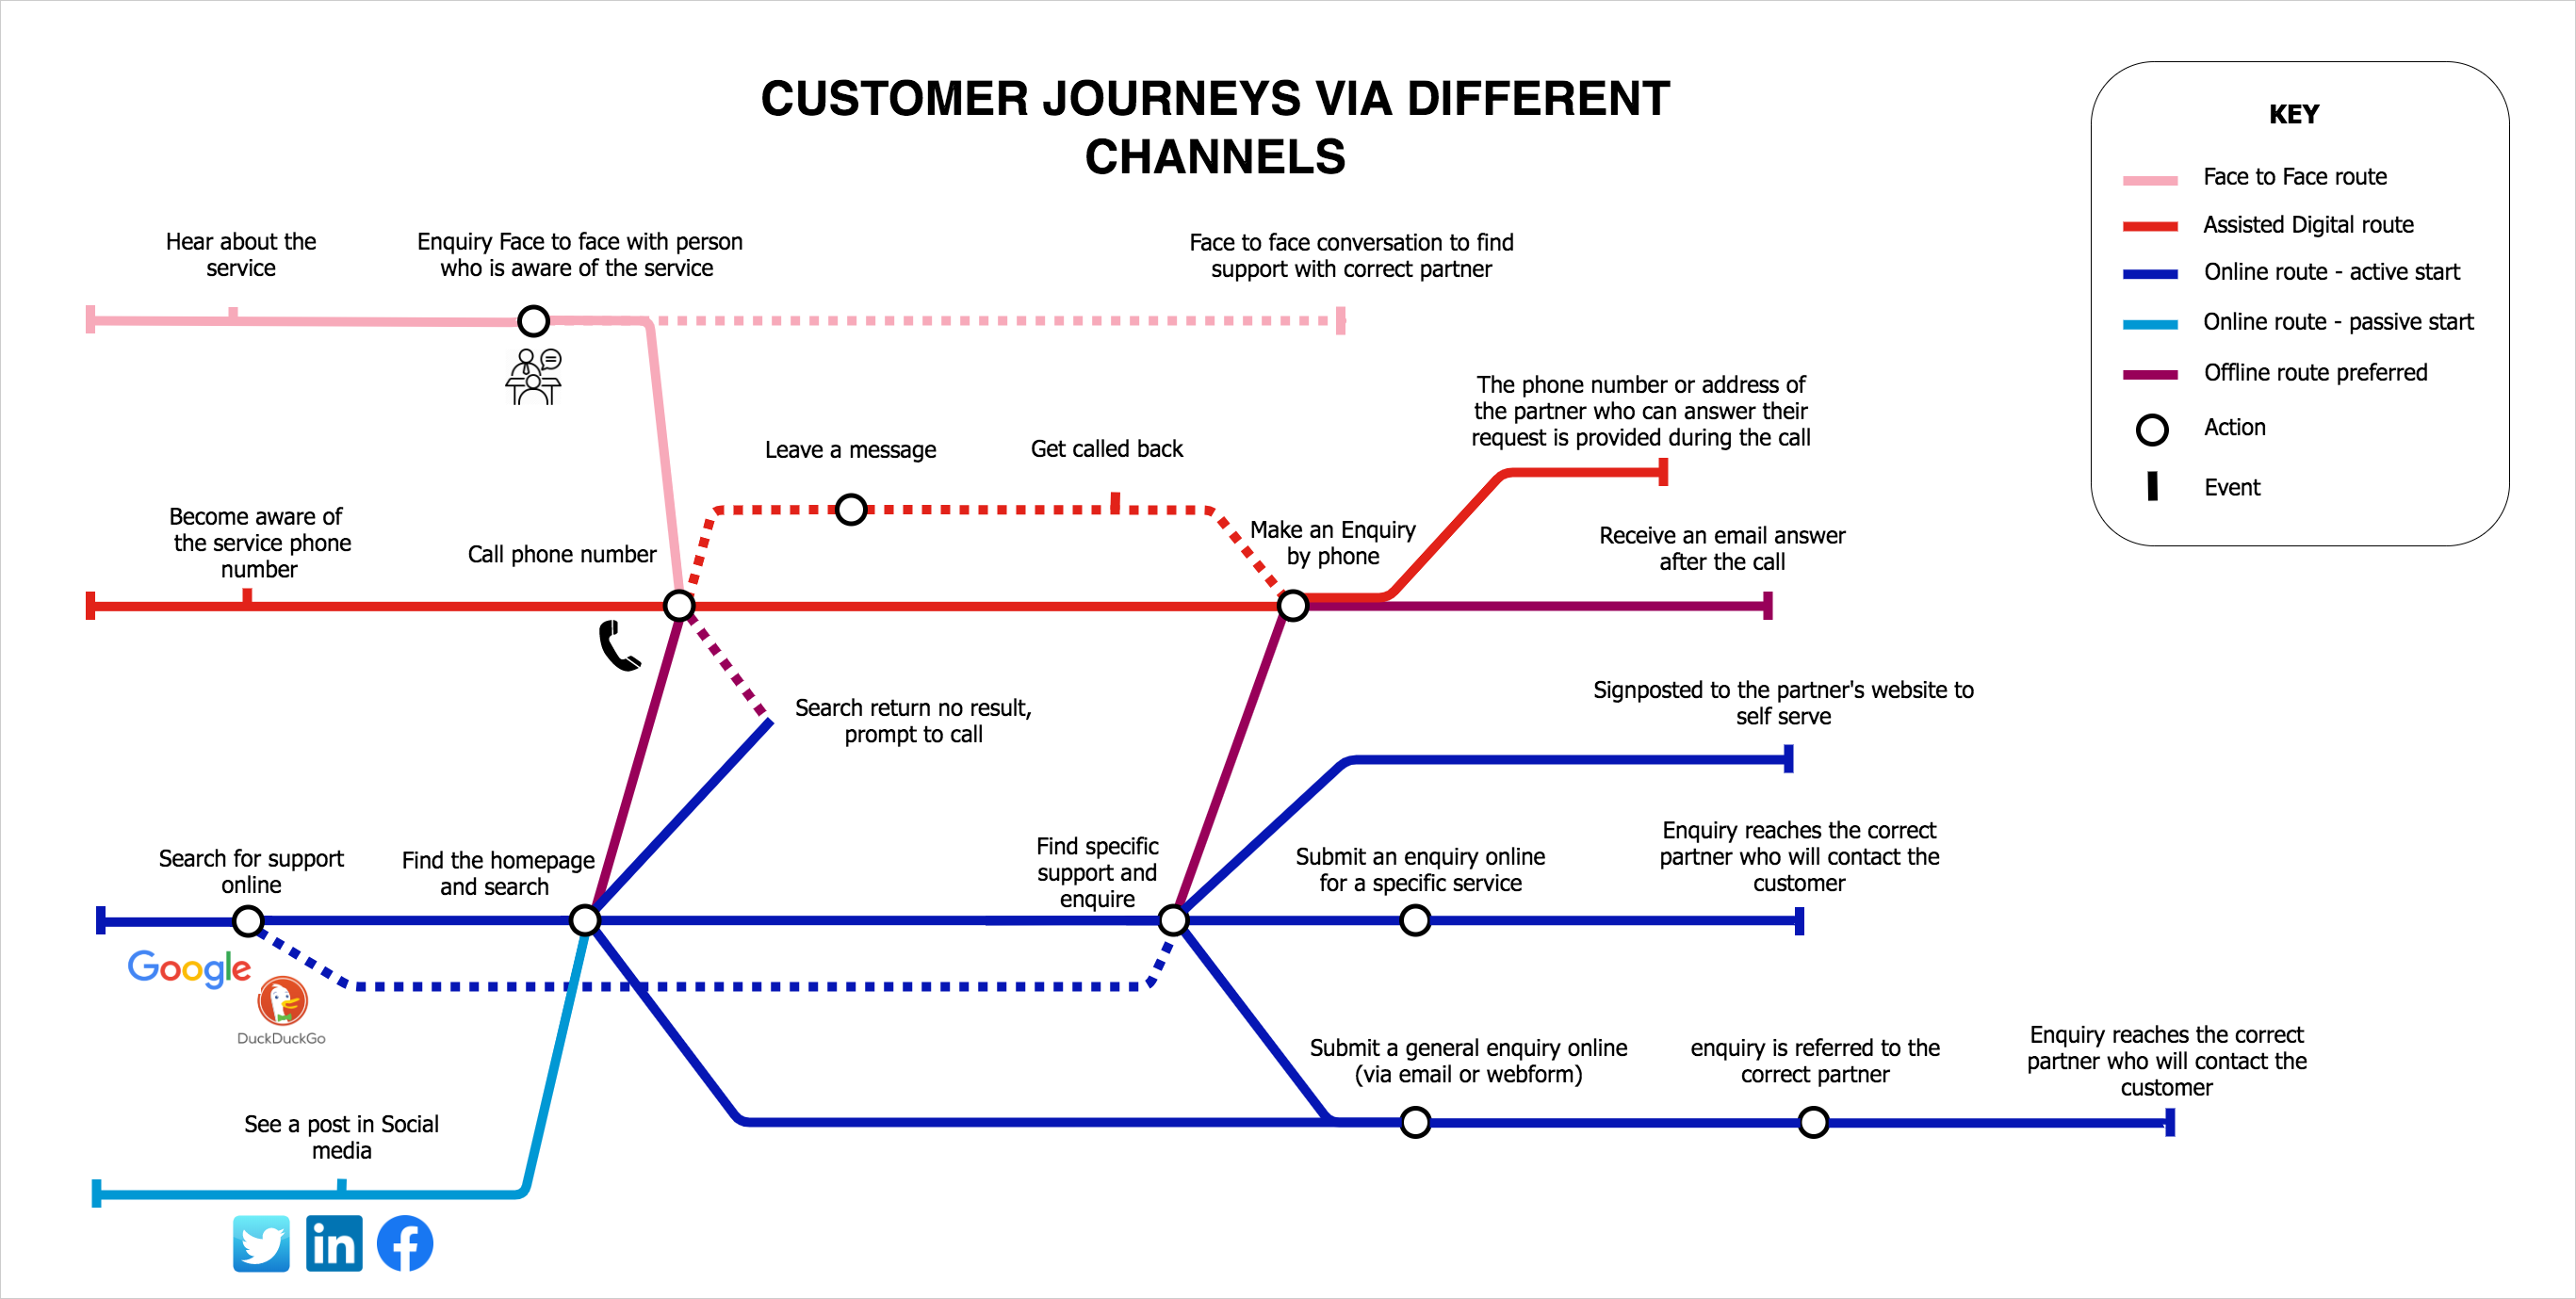 tube map showing how the customer find a service: 1line for face to face one for phone, another online and various outcomes